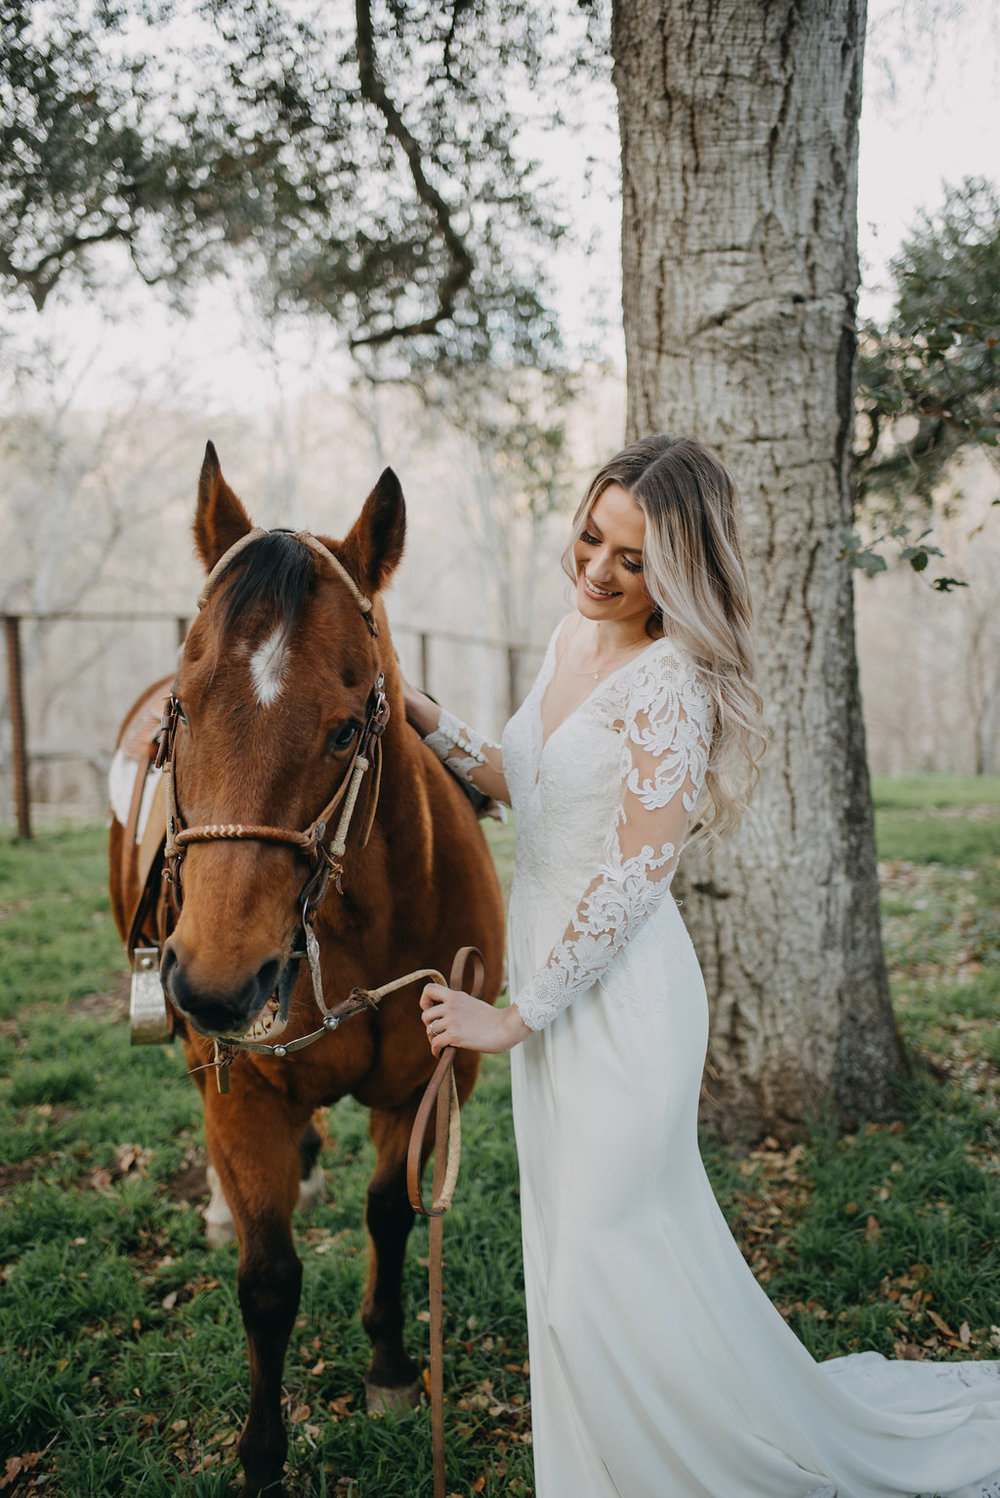 boho wedding shoot, horeseback riding